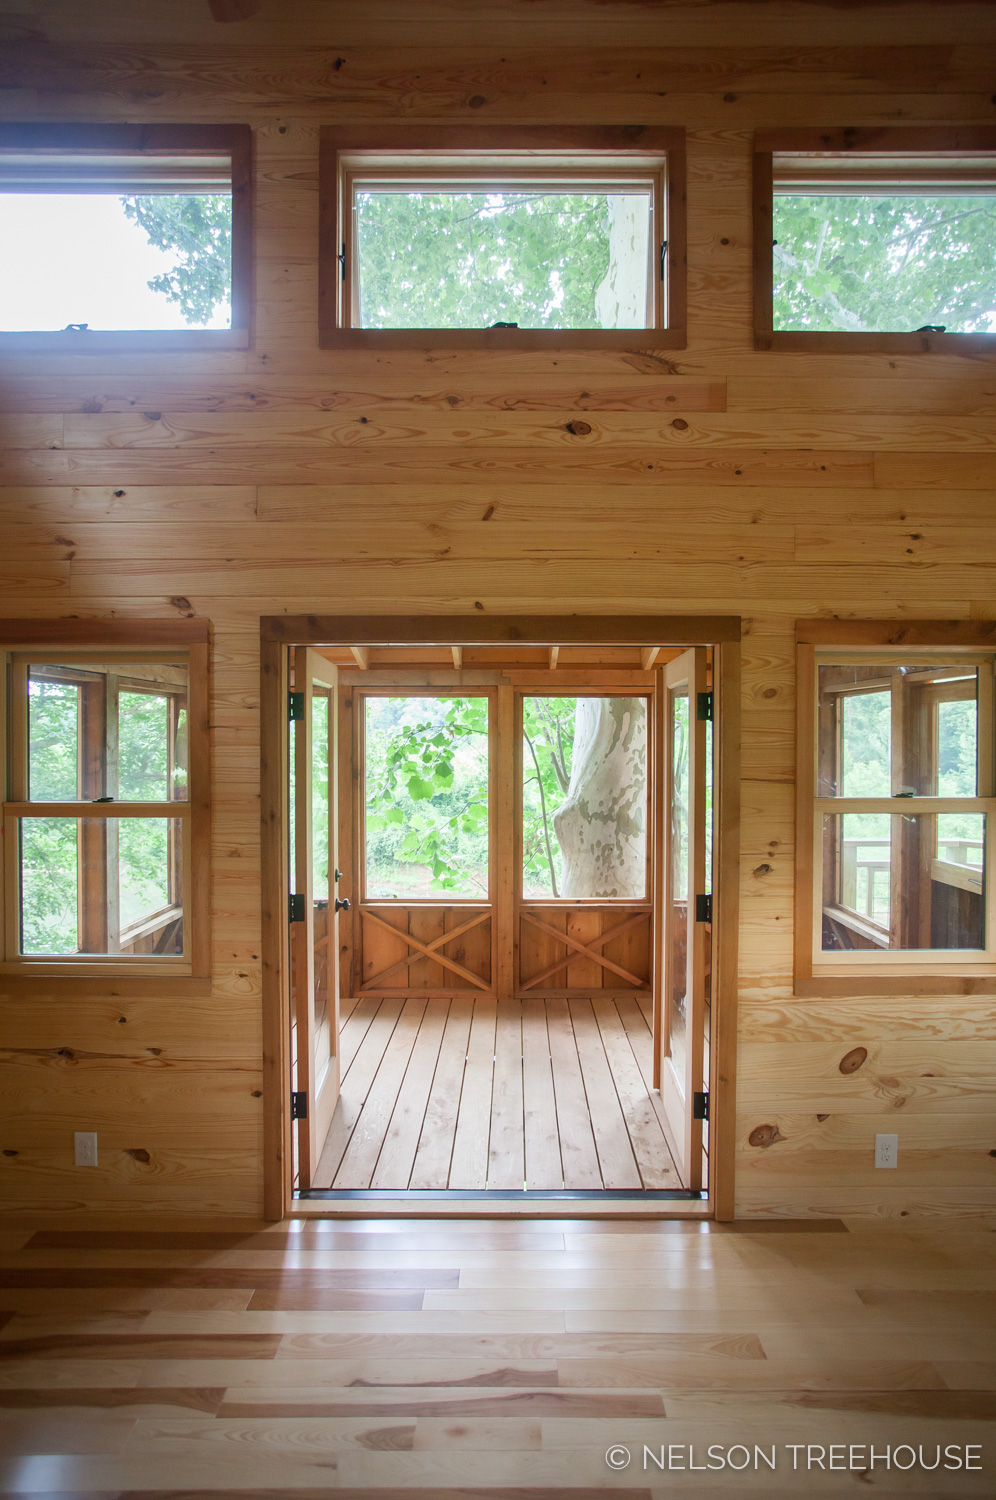 TenNessee Riverbank Treehouse entry to porch